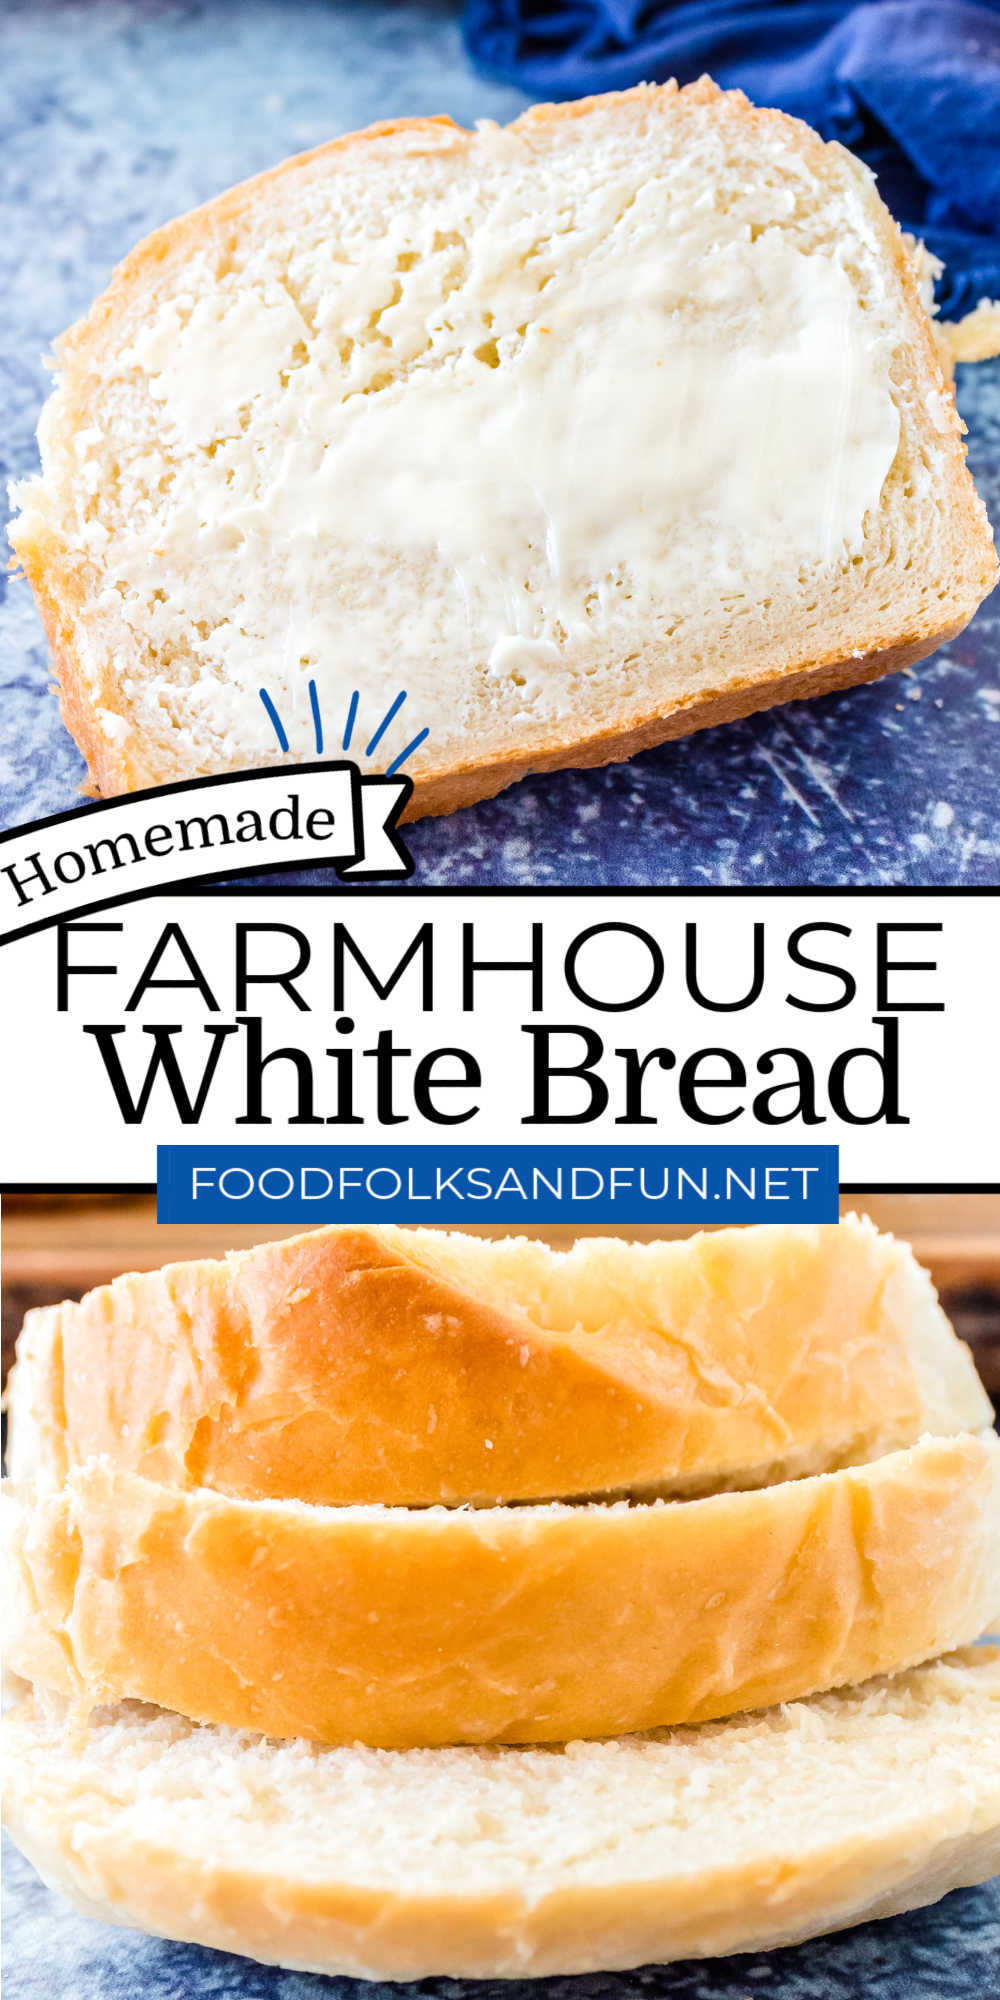 This Farmhouse White Bread recipe is easy to make and calls for just six simple ingredients. This homemade white bread recipe makes 2 large fluffy loaves. via @foodfolksandfun